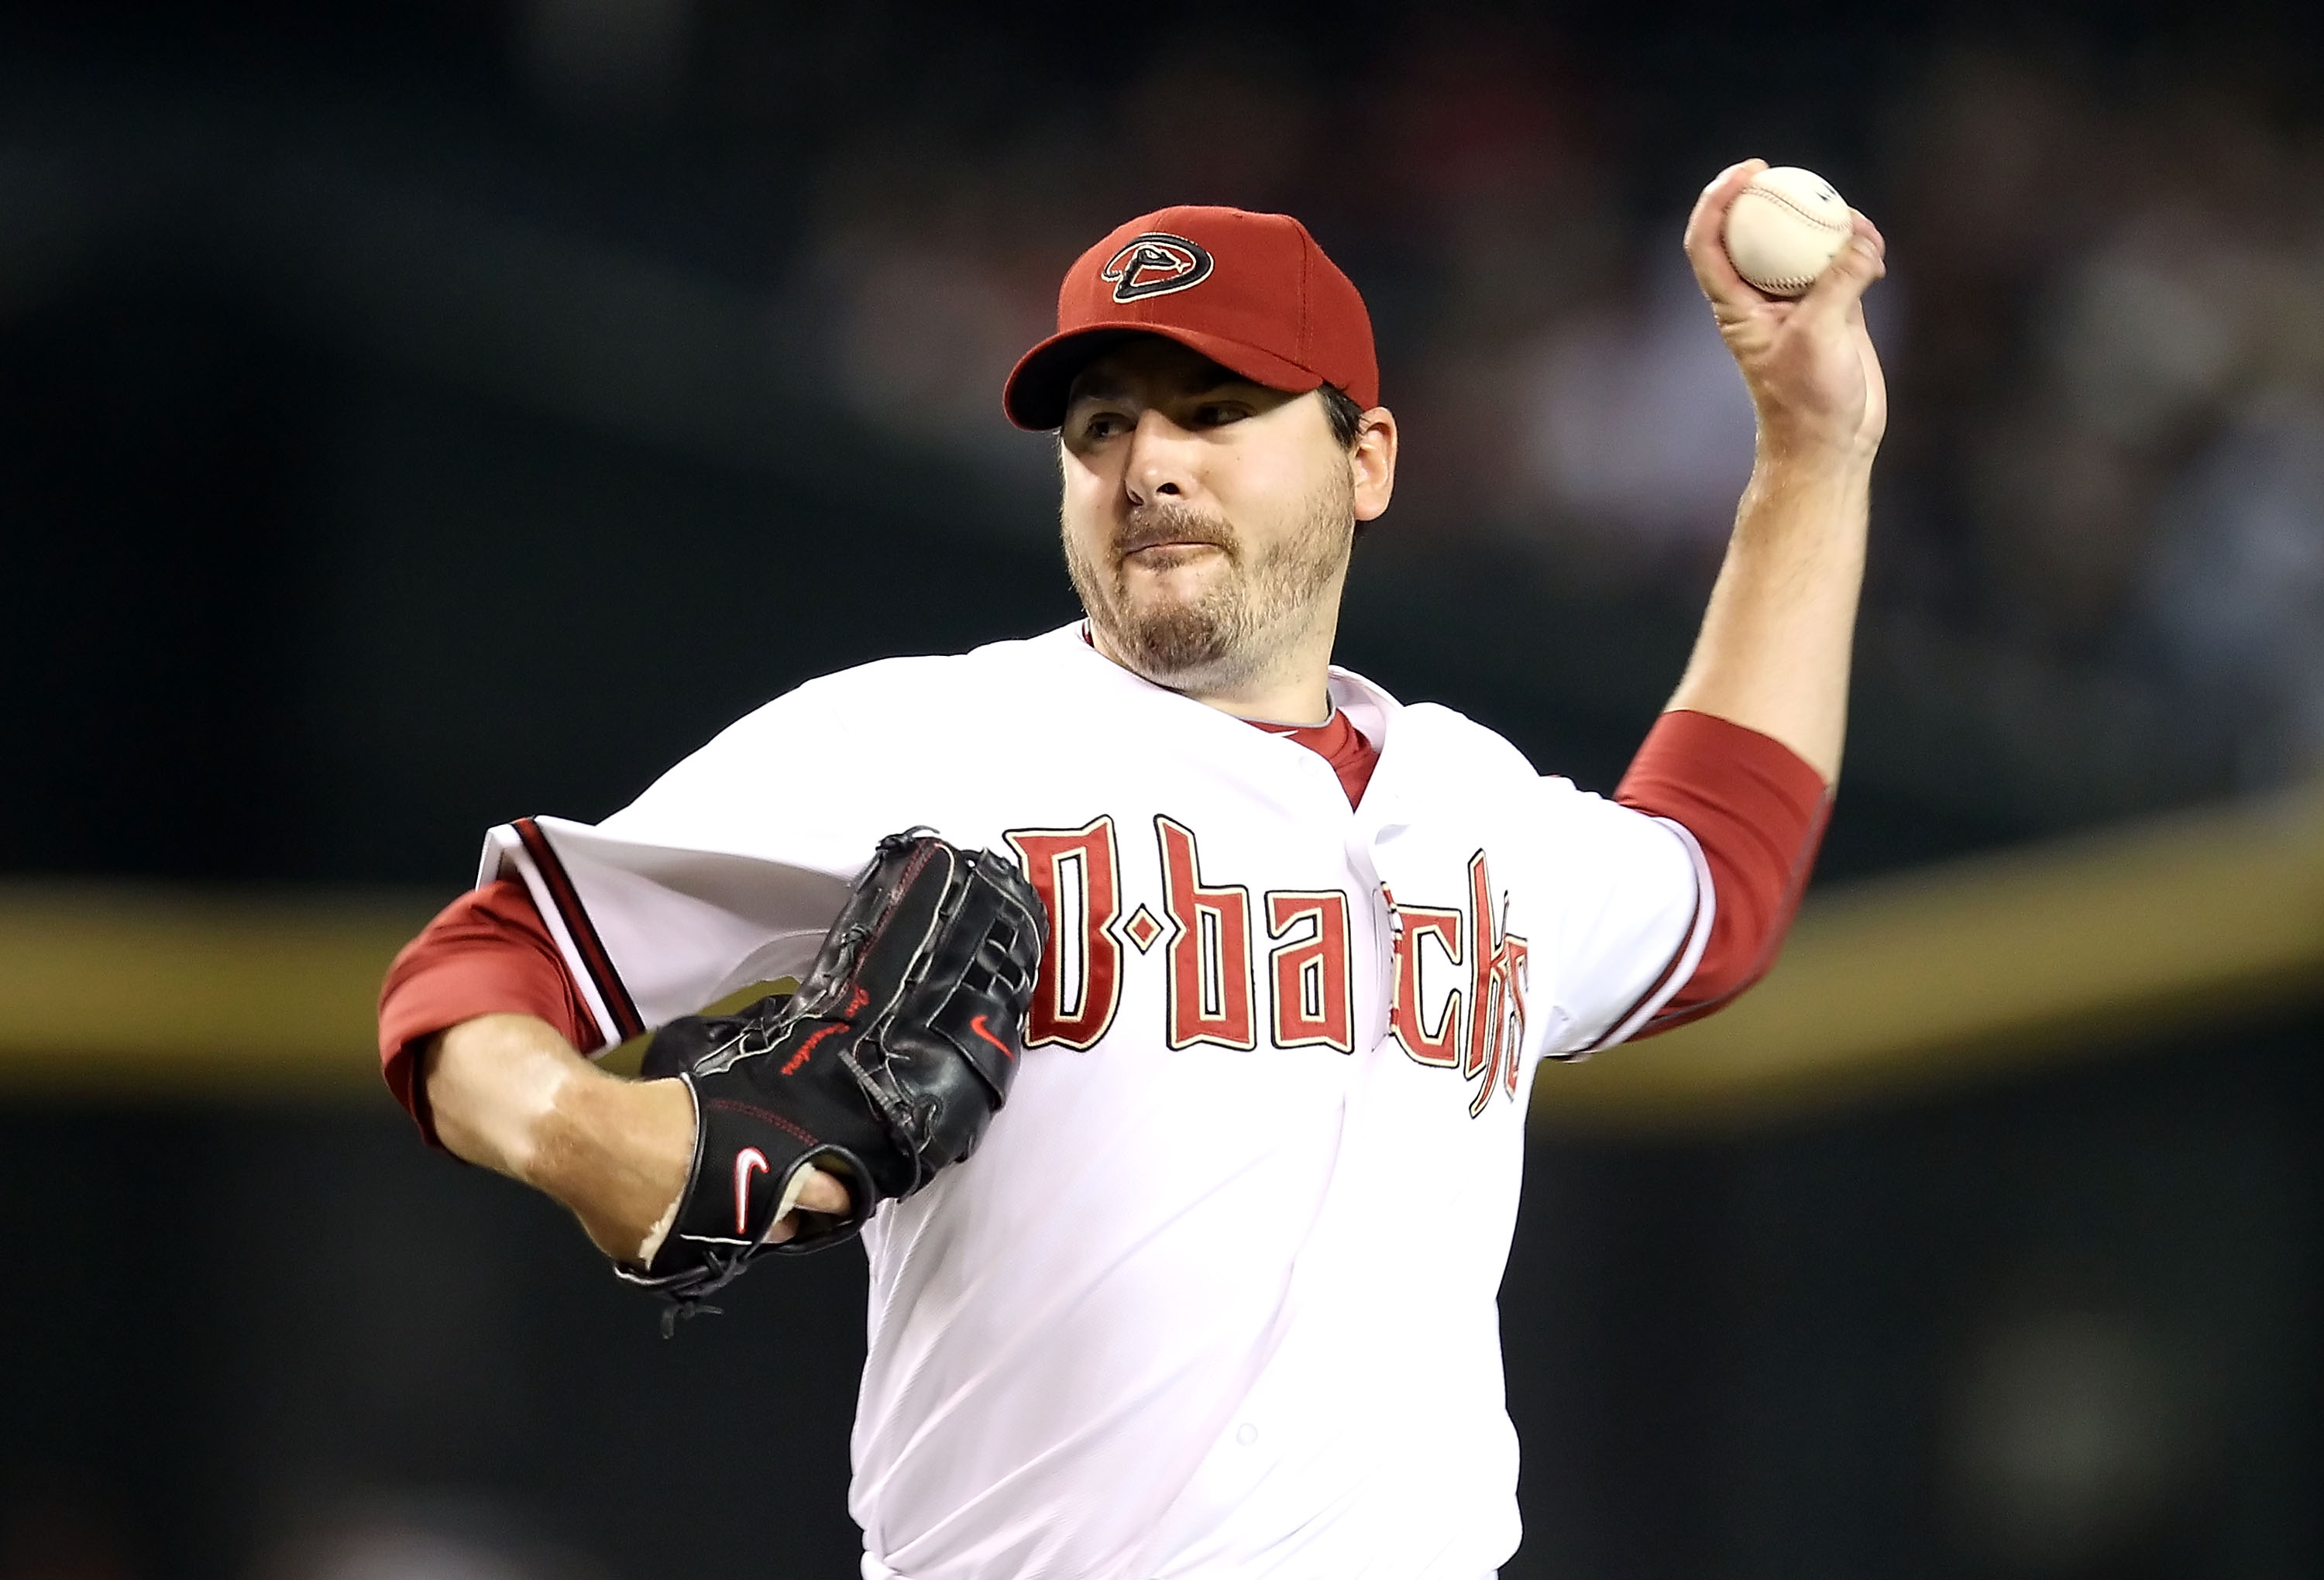 PHOENIX - SEPTEMBER 21:  Starting pitcher Joe Saunders #34 of the Arizona Diamondbacks pitches against the Colorado Rockies during the Major League Baseball game at Chase Field on September 21, 2010 in Phoenix, Arizona.  (Photo by Christian Petersen/Getty